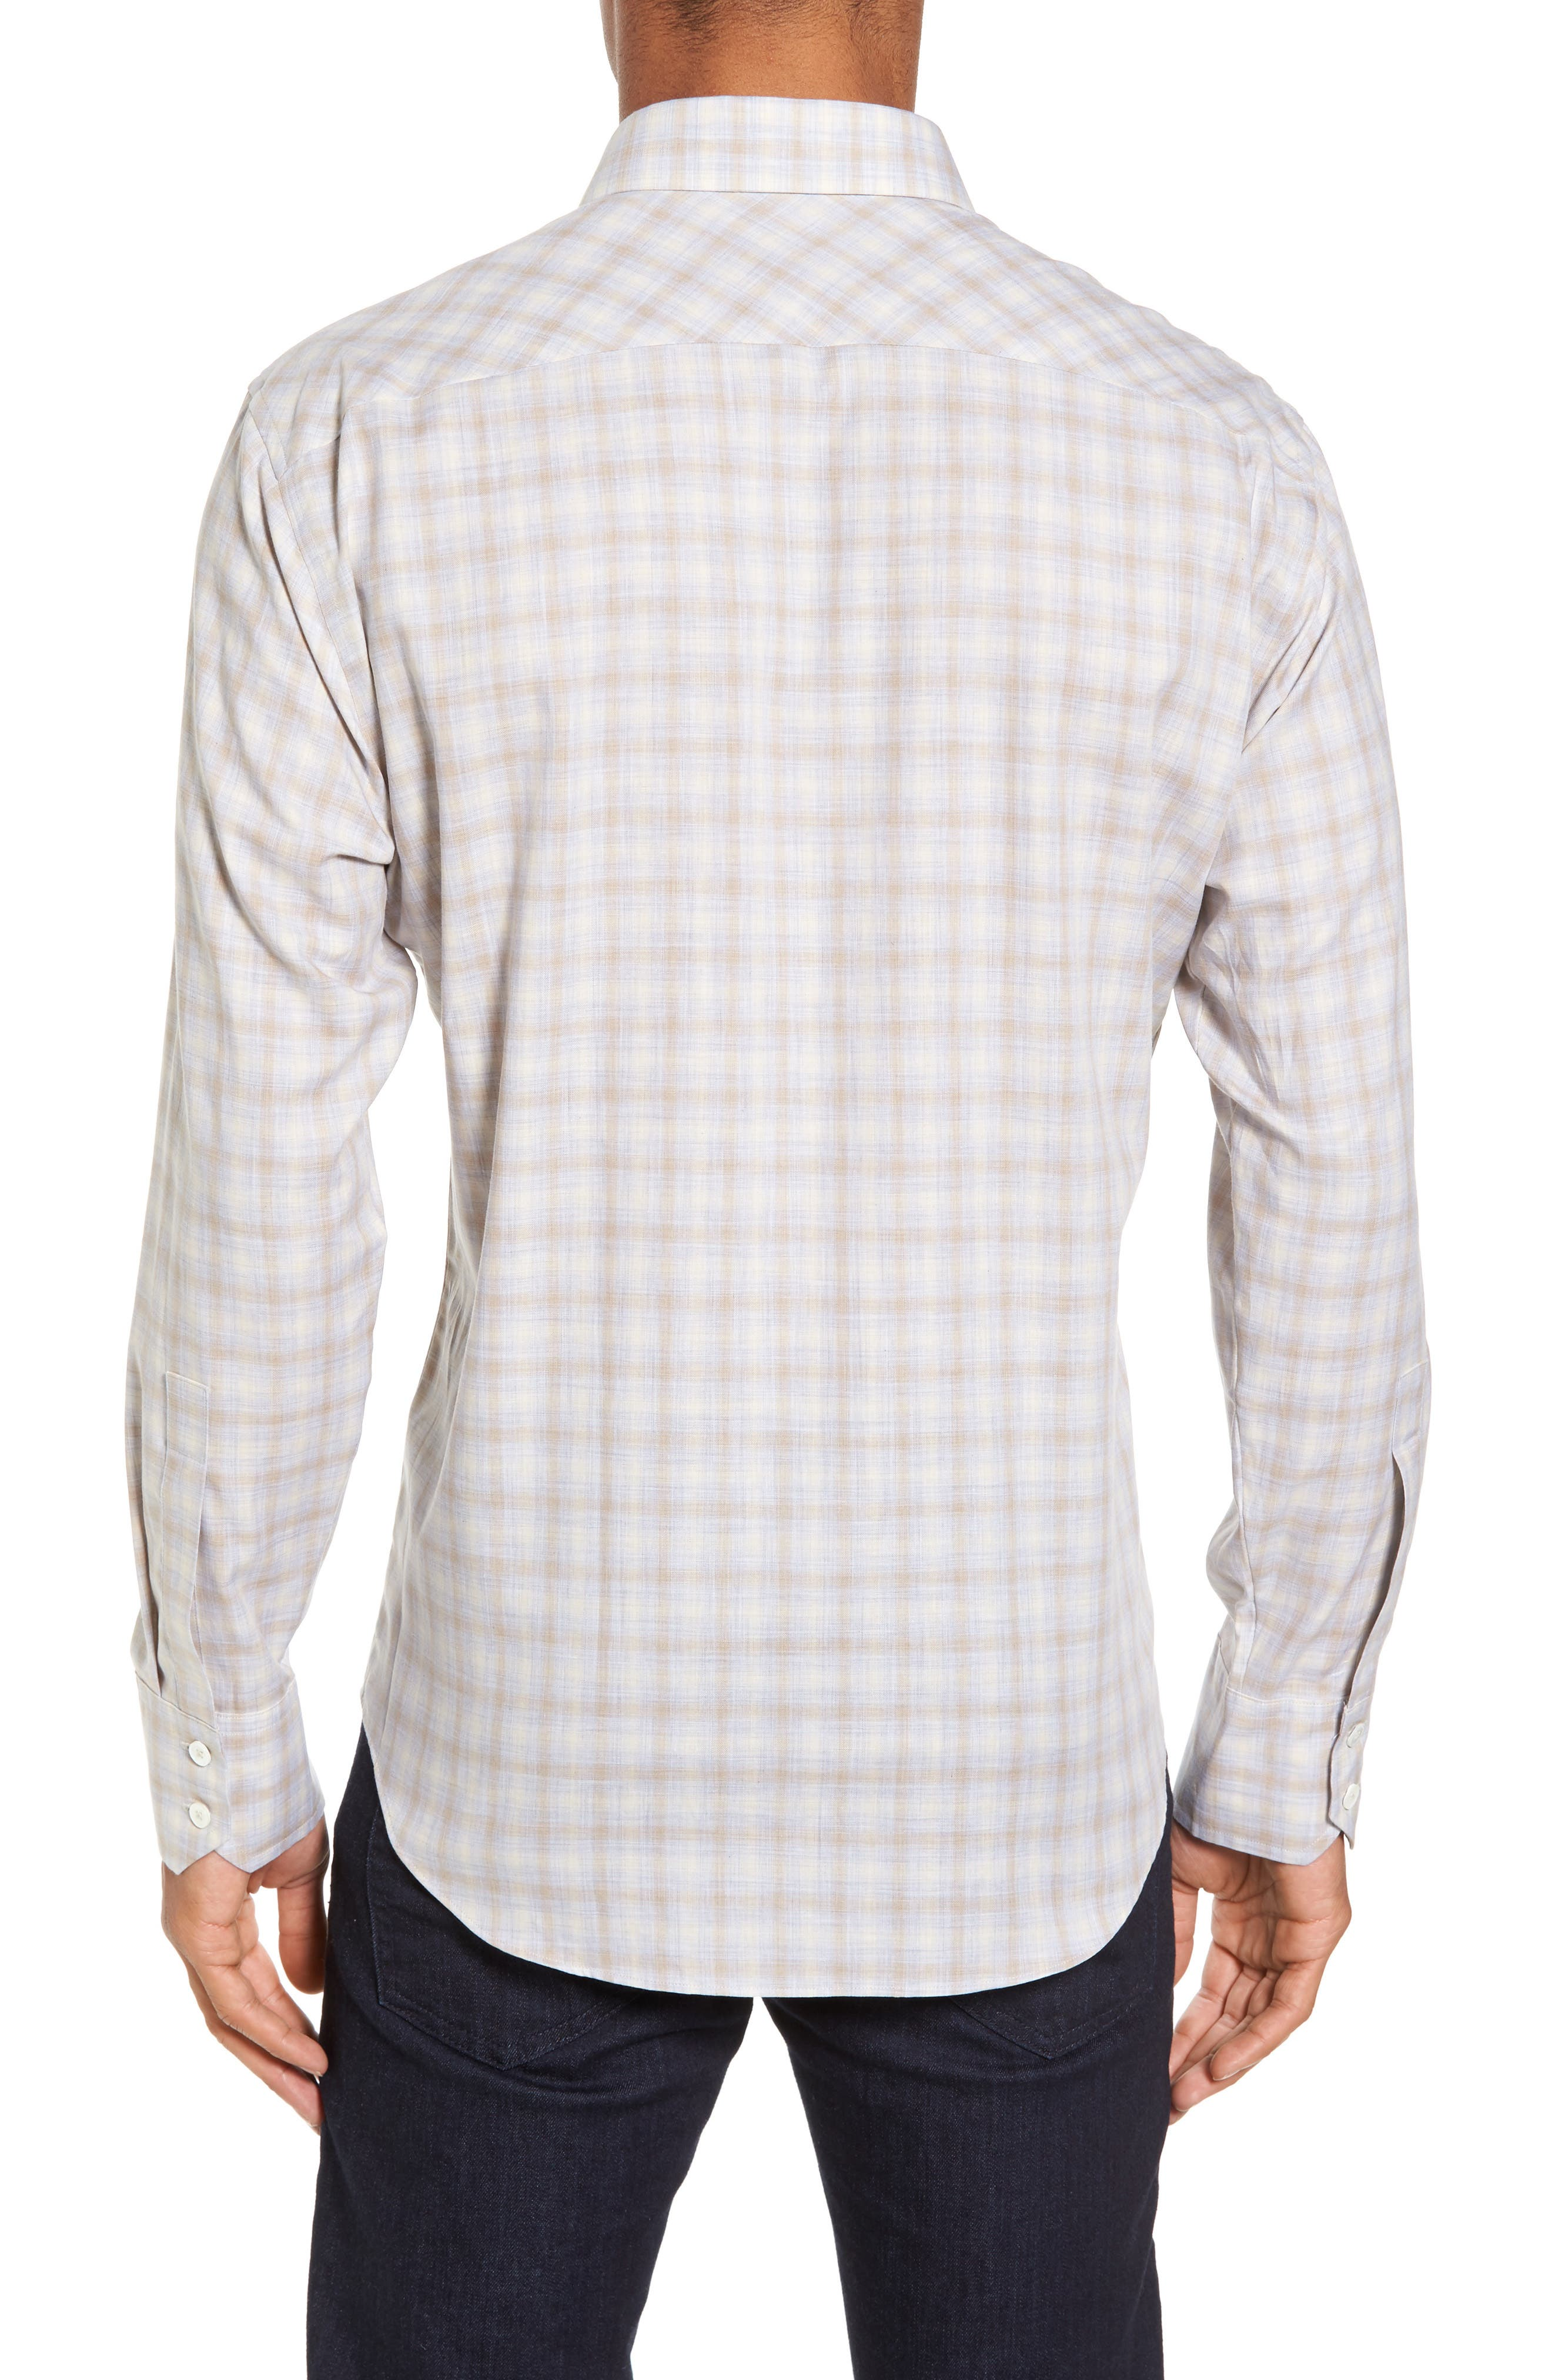 Lowles Slim Fit Plaid Sport Shirt,                             Alternate thumbnail 2, color,